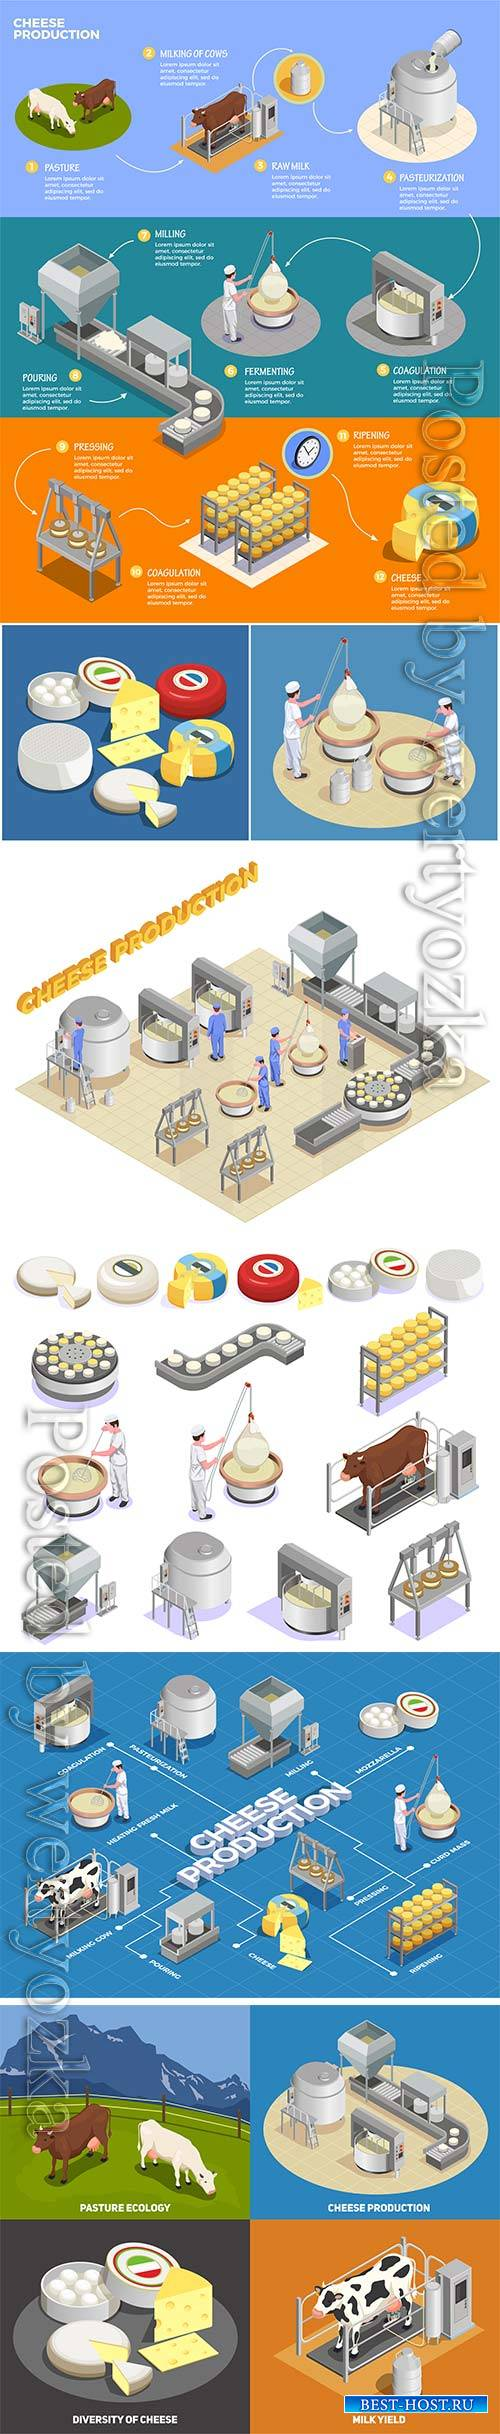 Isometric cheese production illustrates the process of milk yield